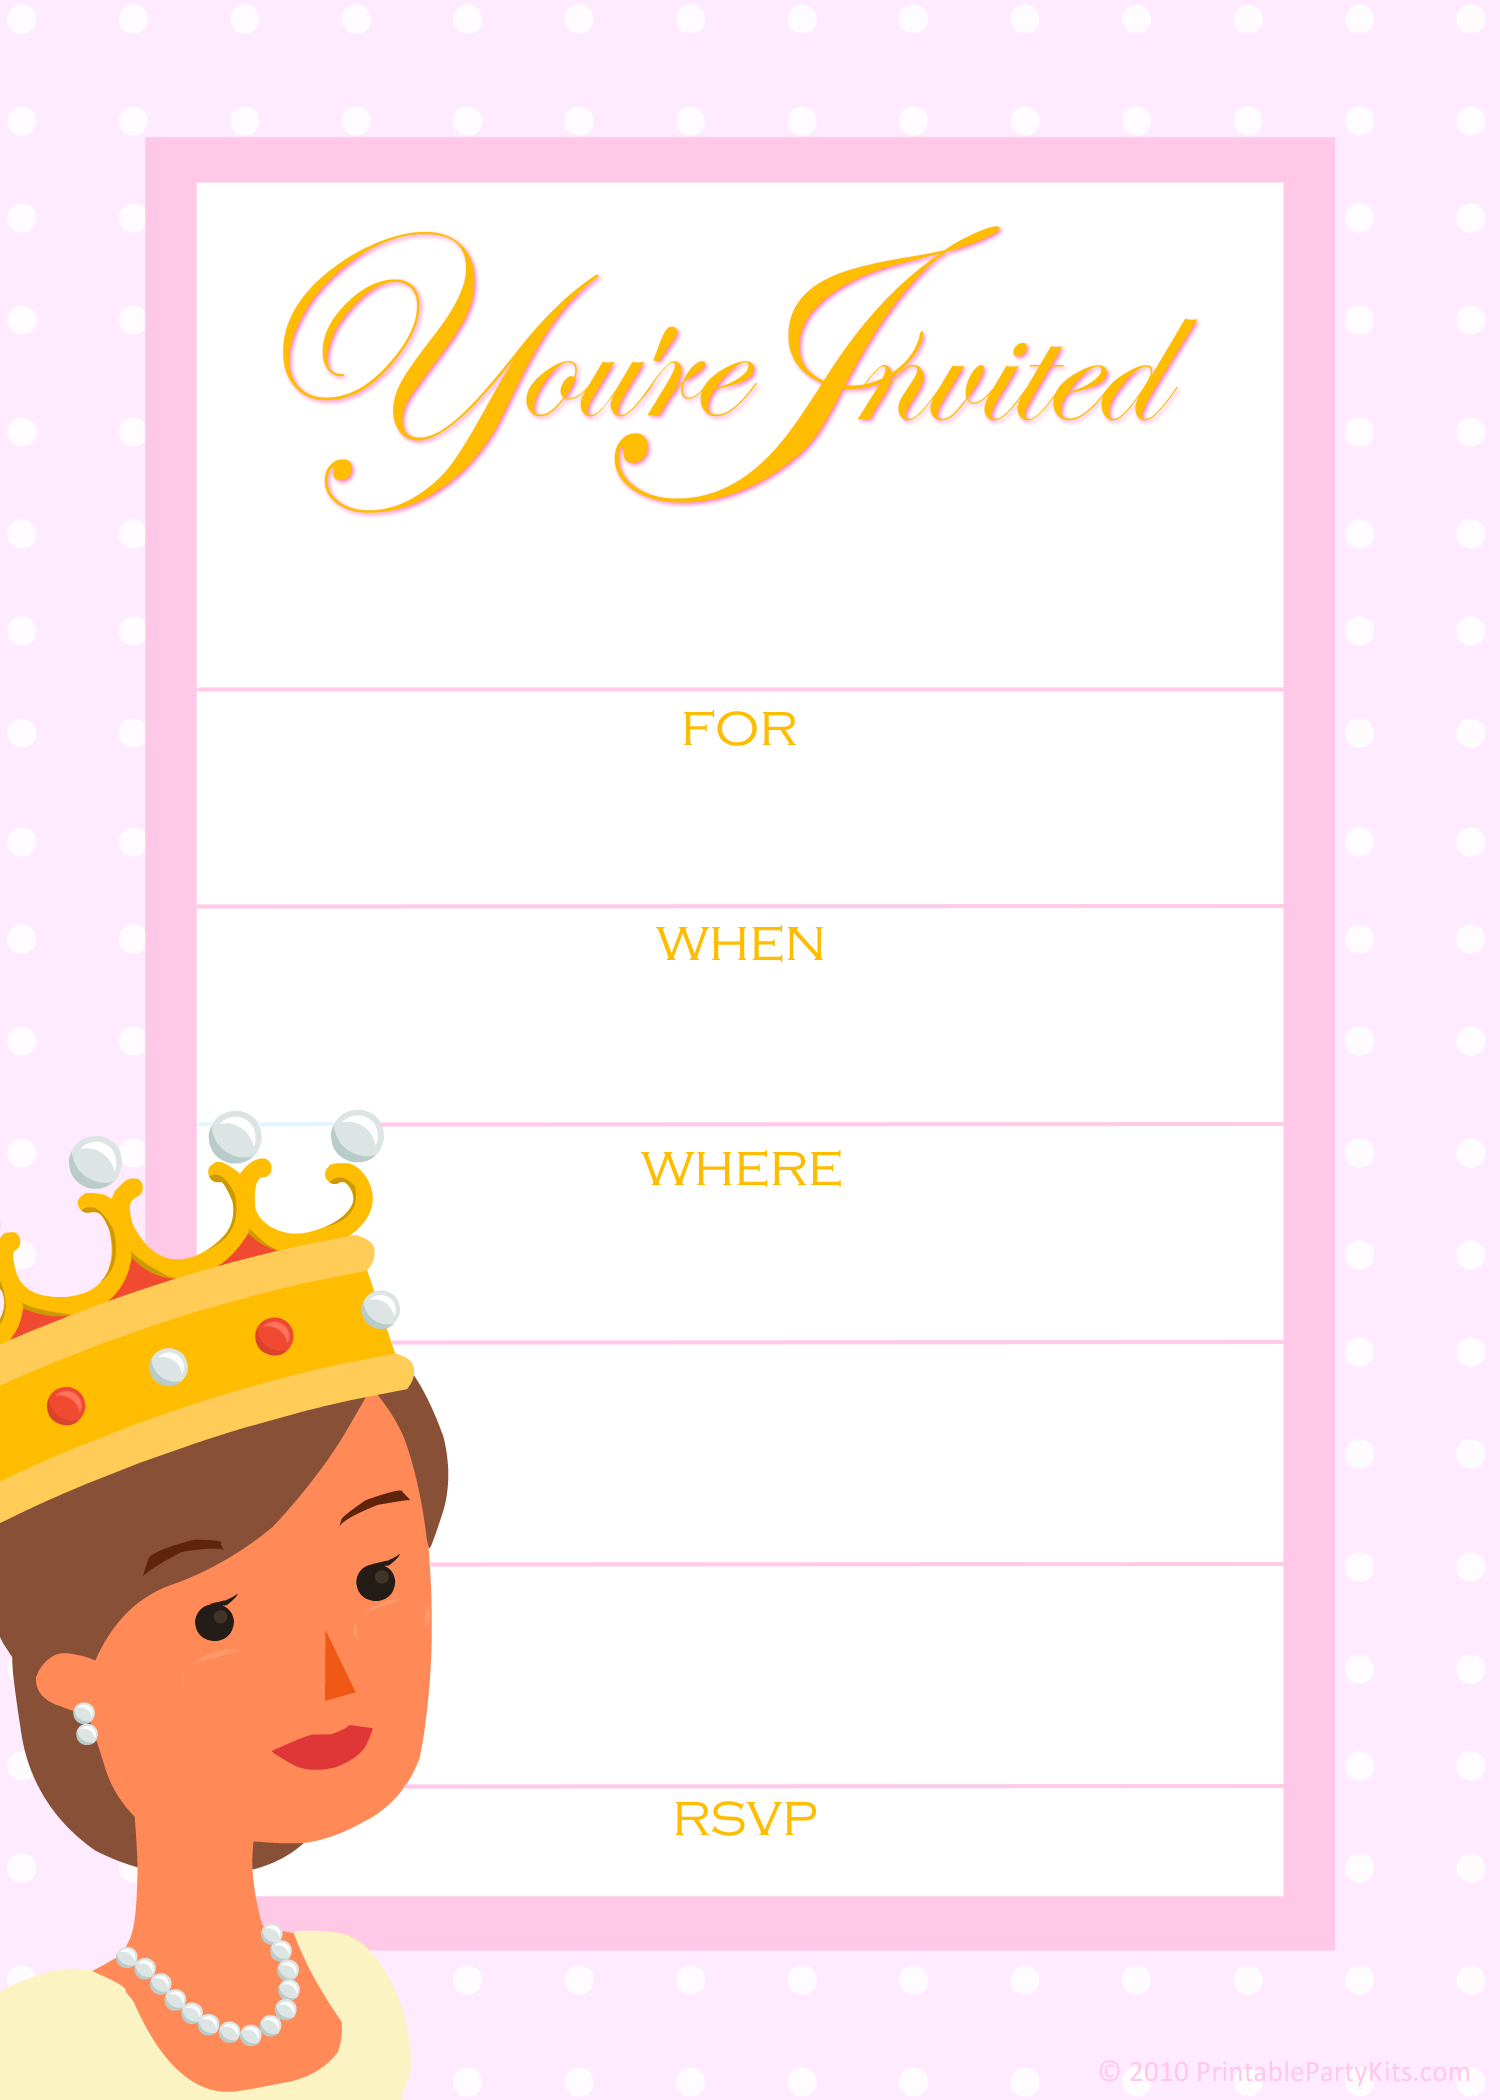 Free Princess Birthday Party Invitation Templates | Princess party ...